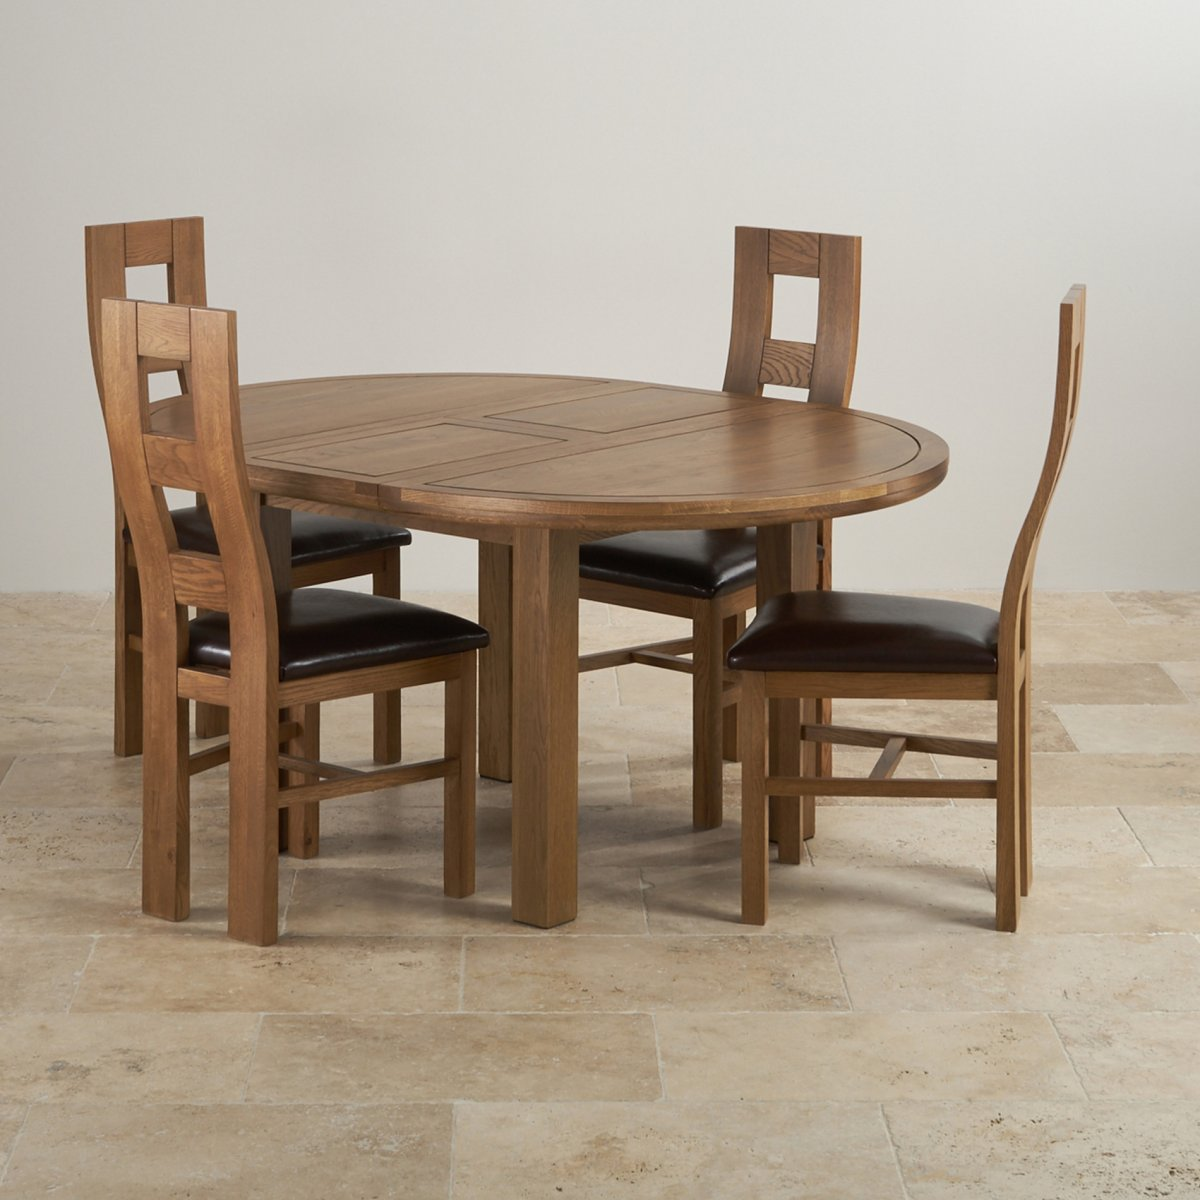 Knightsbridge Rustic Solid Oak Extending Dining Table Wave Brown Leather Chairs Sale Edinburgh